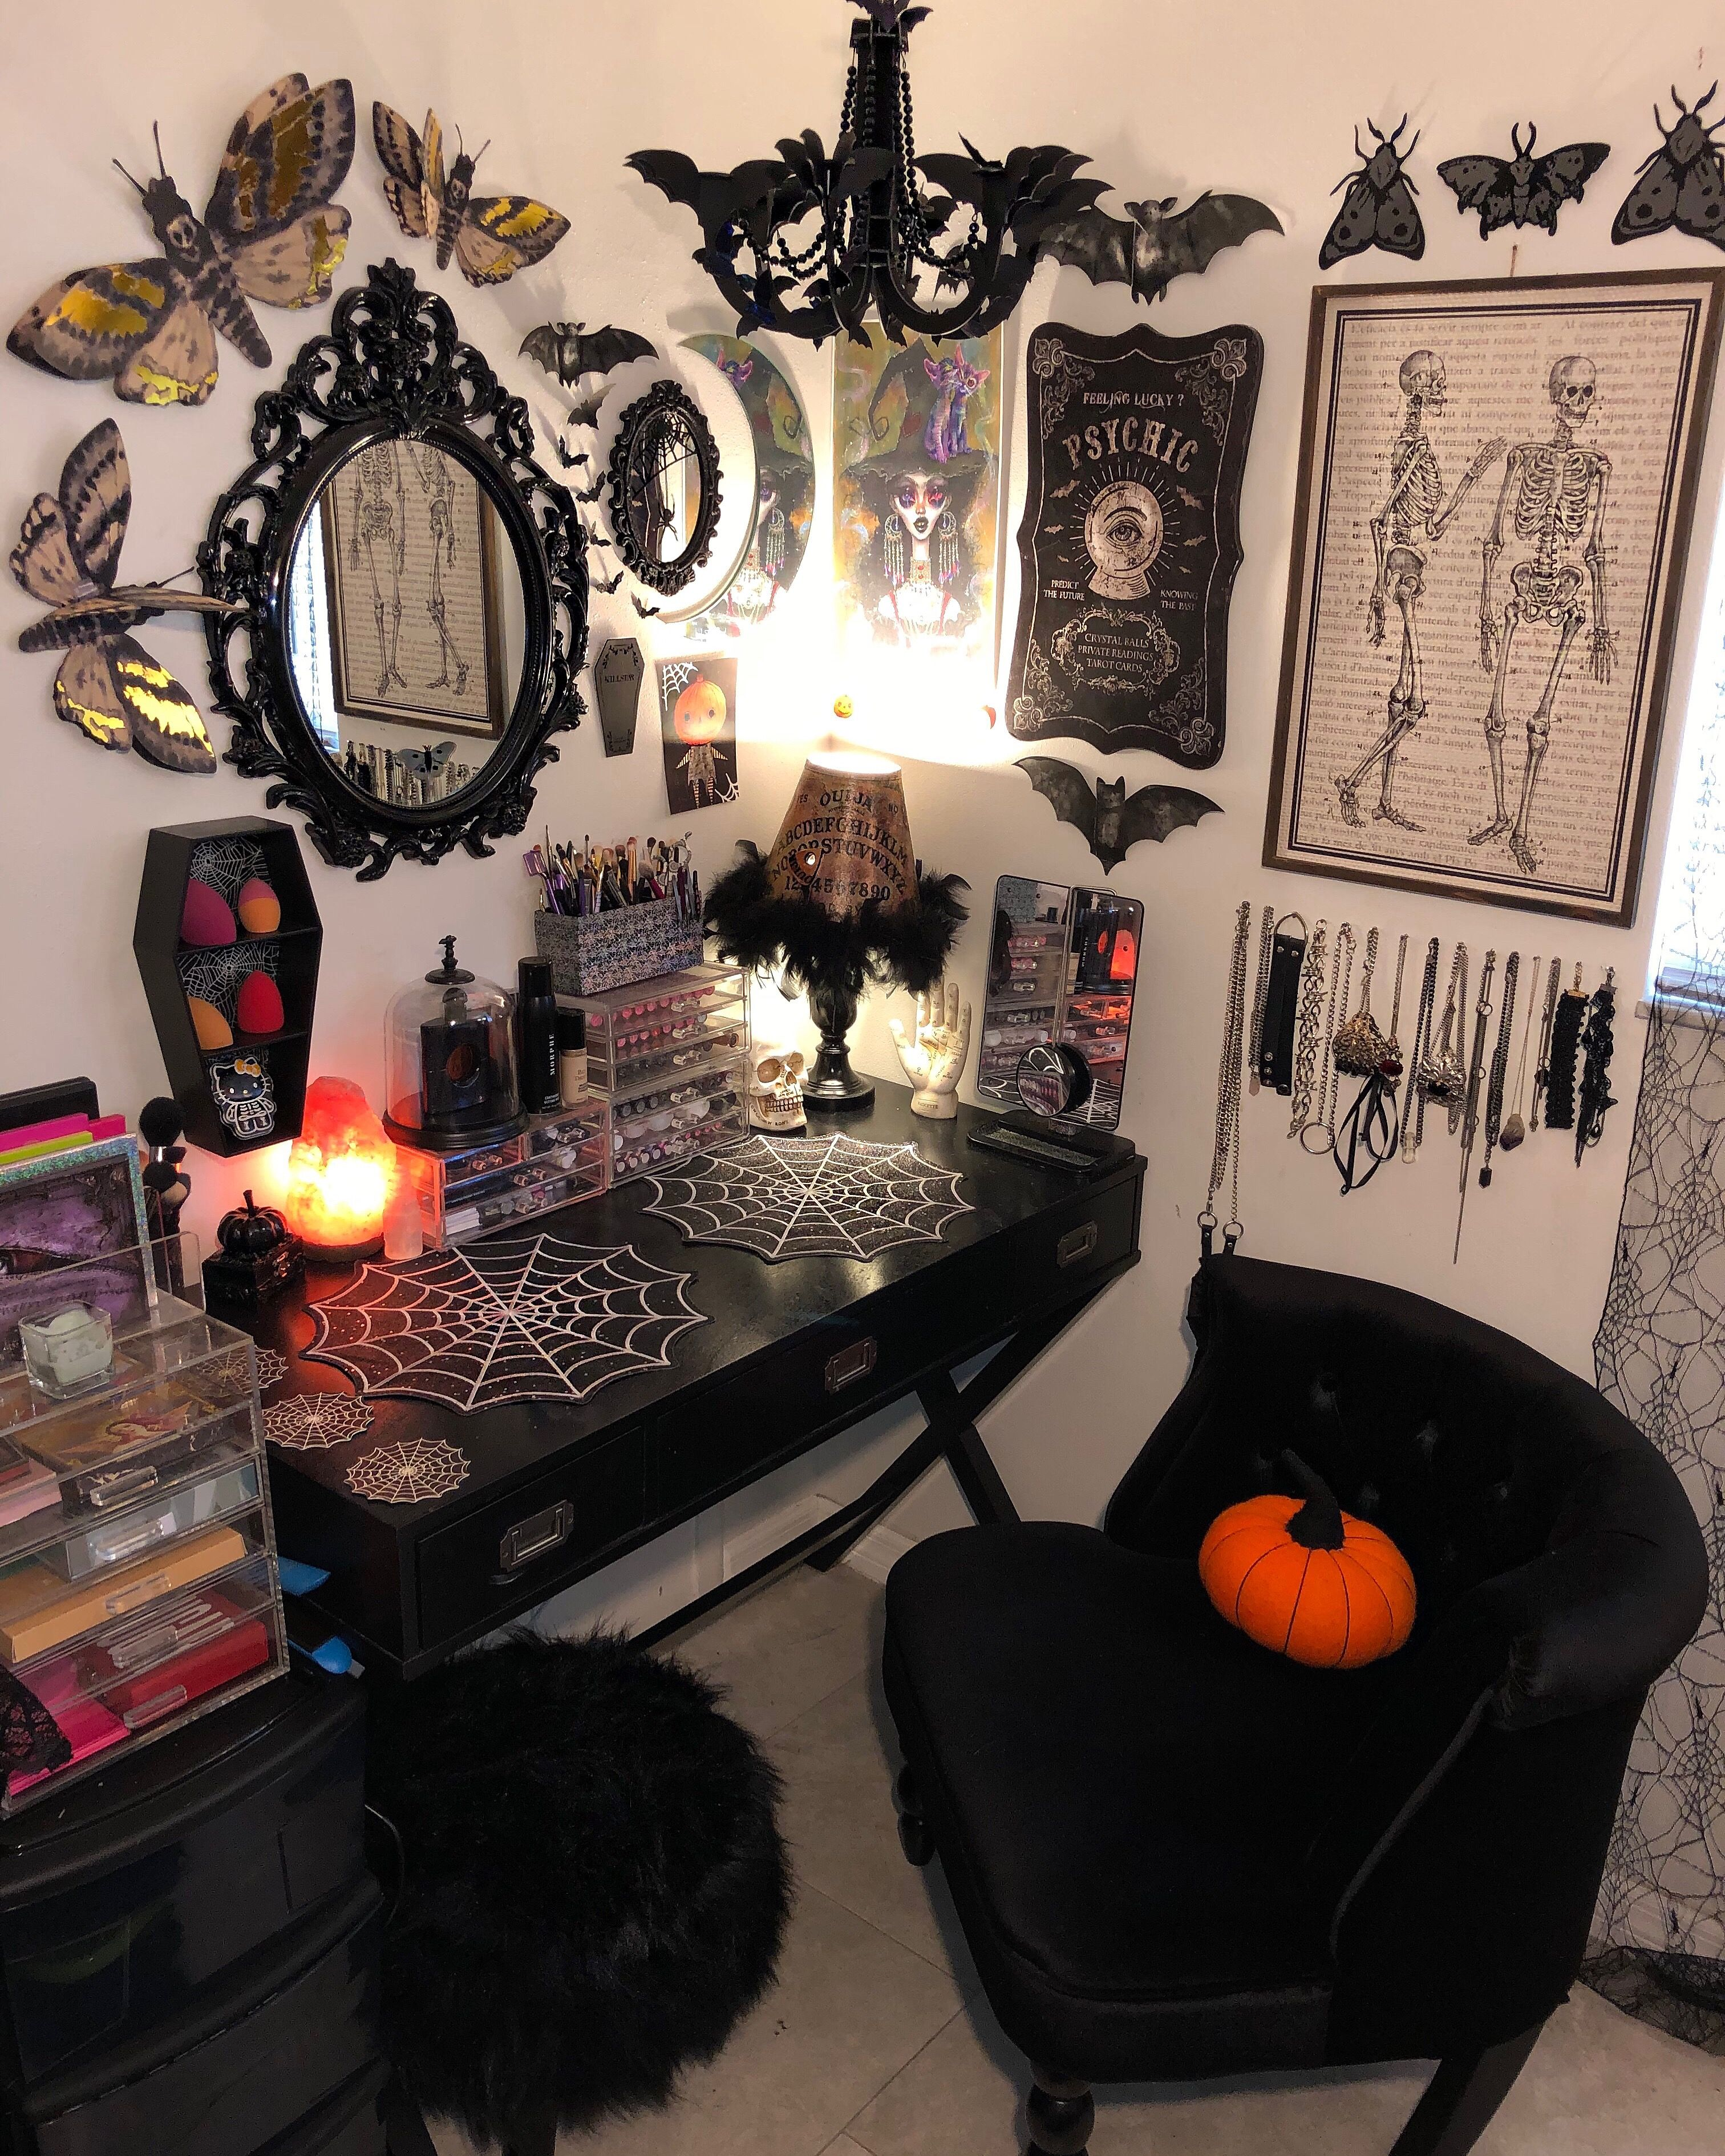 My Sanctuary Ig Lady Sylph Goth Gothdecor Halloween Spooky Creepy Gothhome Spookyhome Hallow Halloween Room Decor Goth Home Decor Dark Home Decor